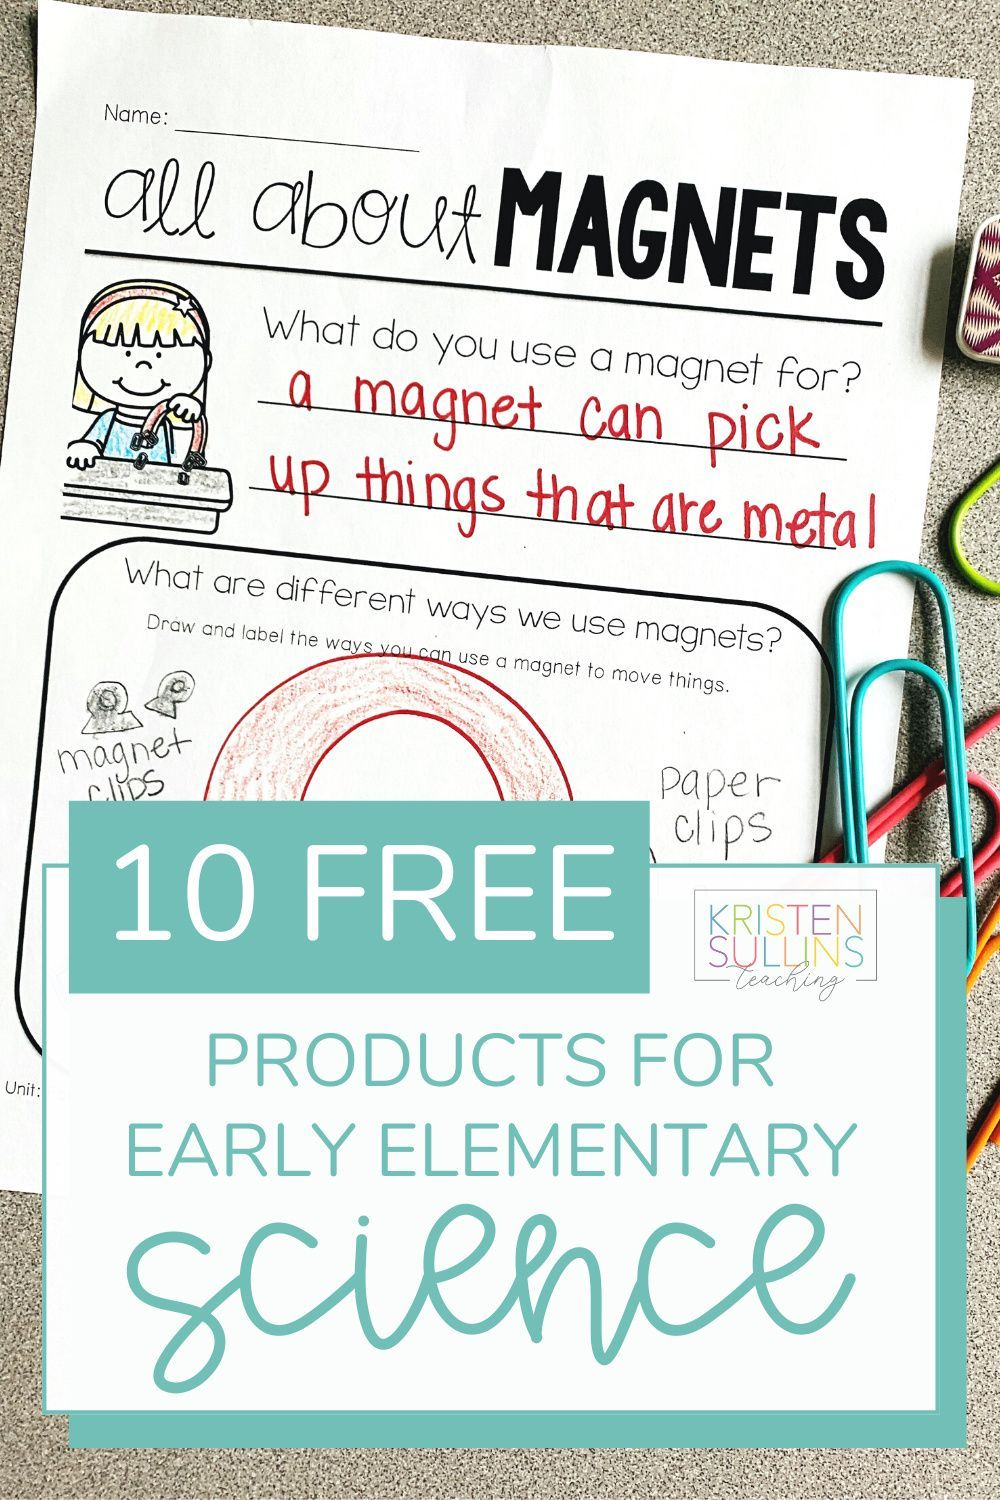 Free Science Worksheets For Elementary In 2021 Free Science Worksheets Back To School Teacher Teacher Help